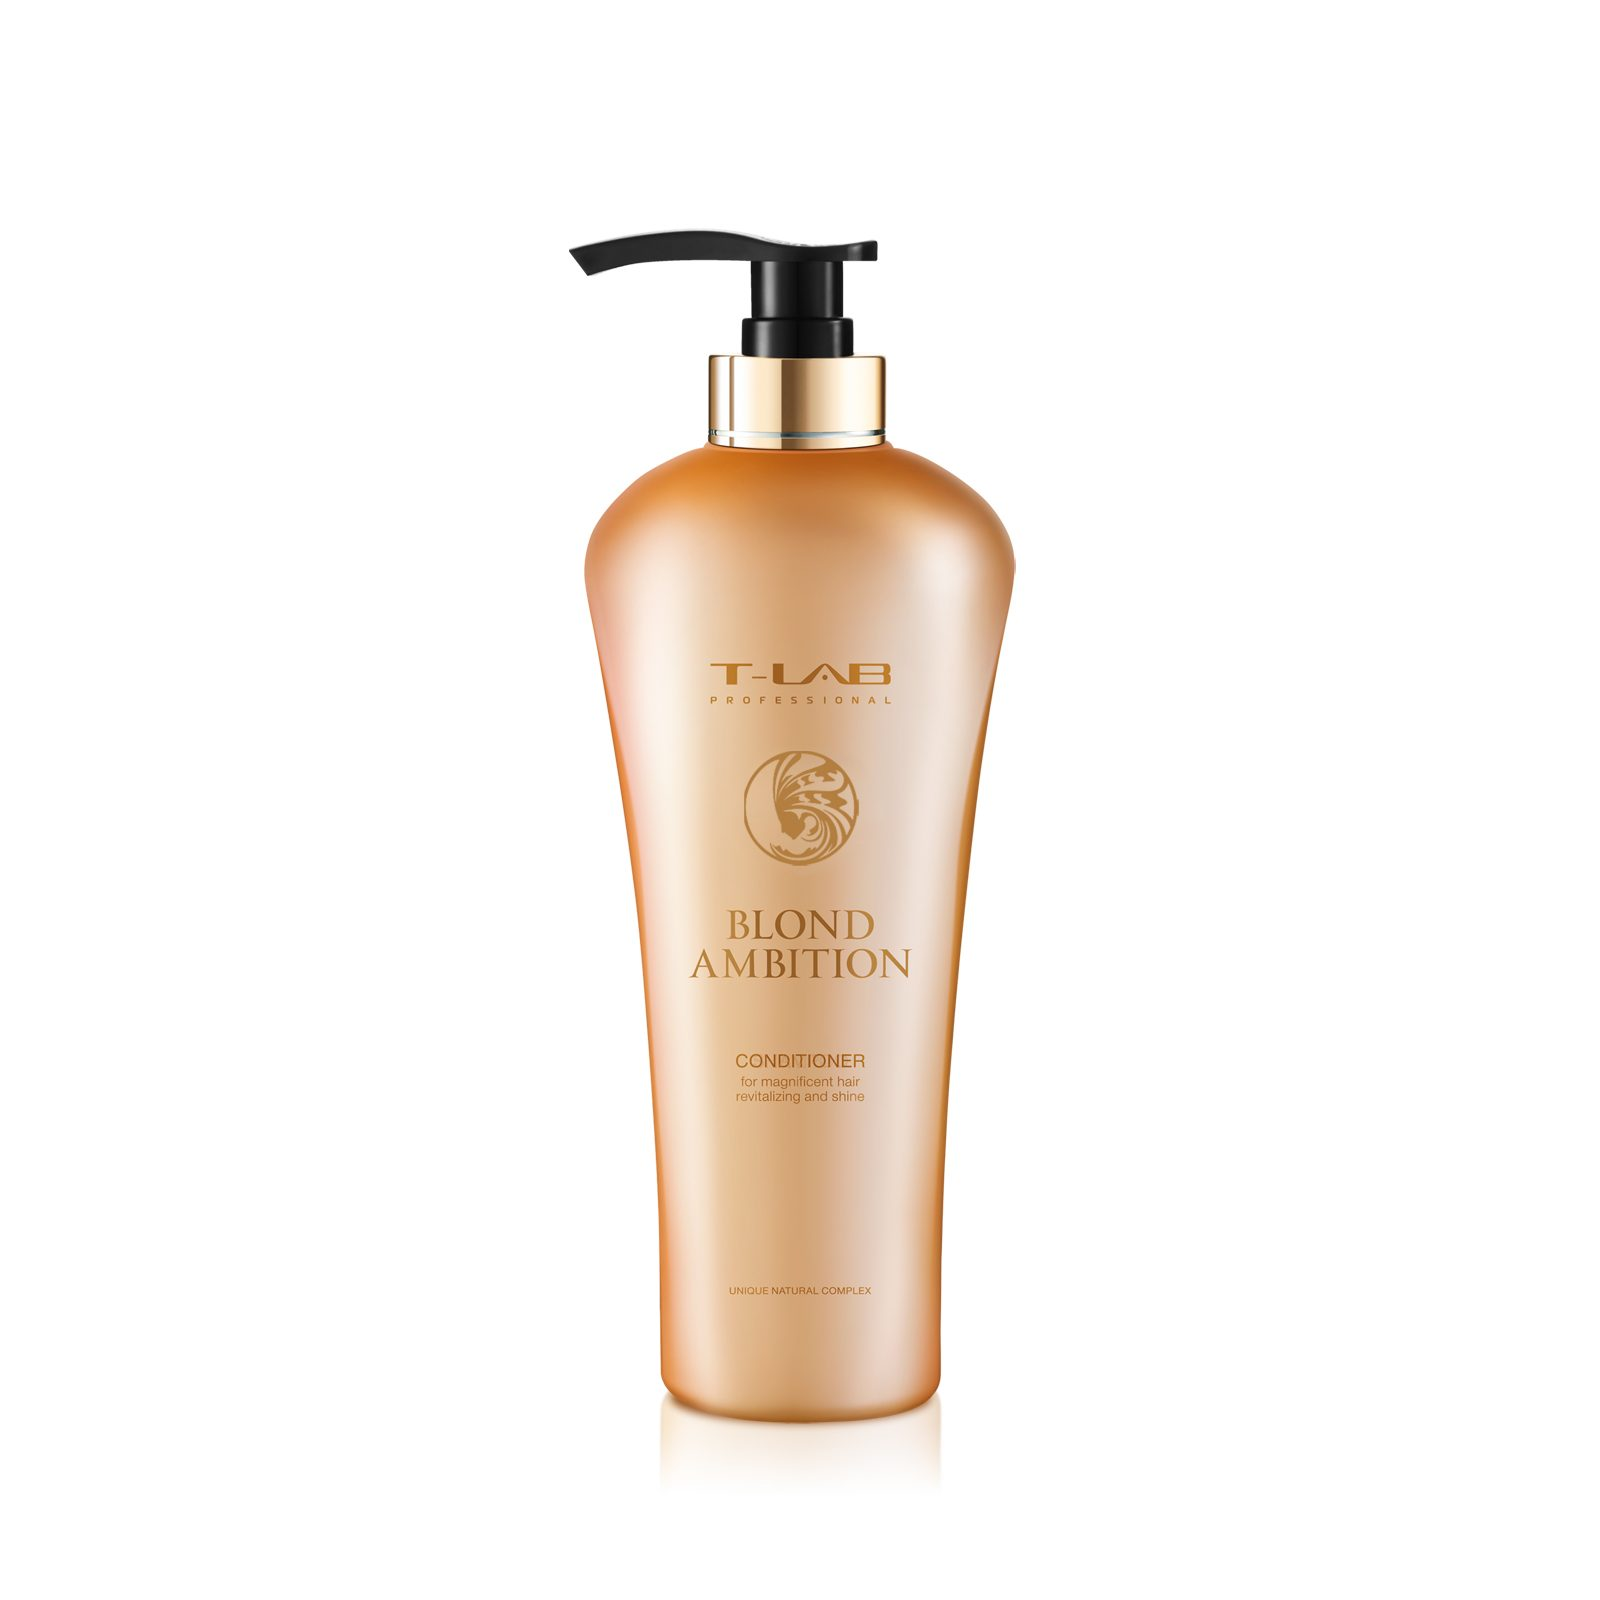 BLOND AMBITION CONDITIONER 750 ml